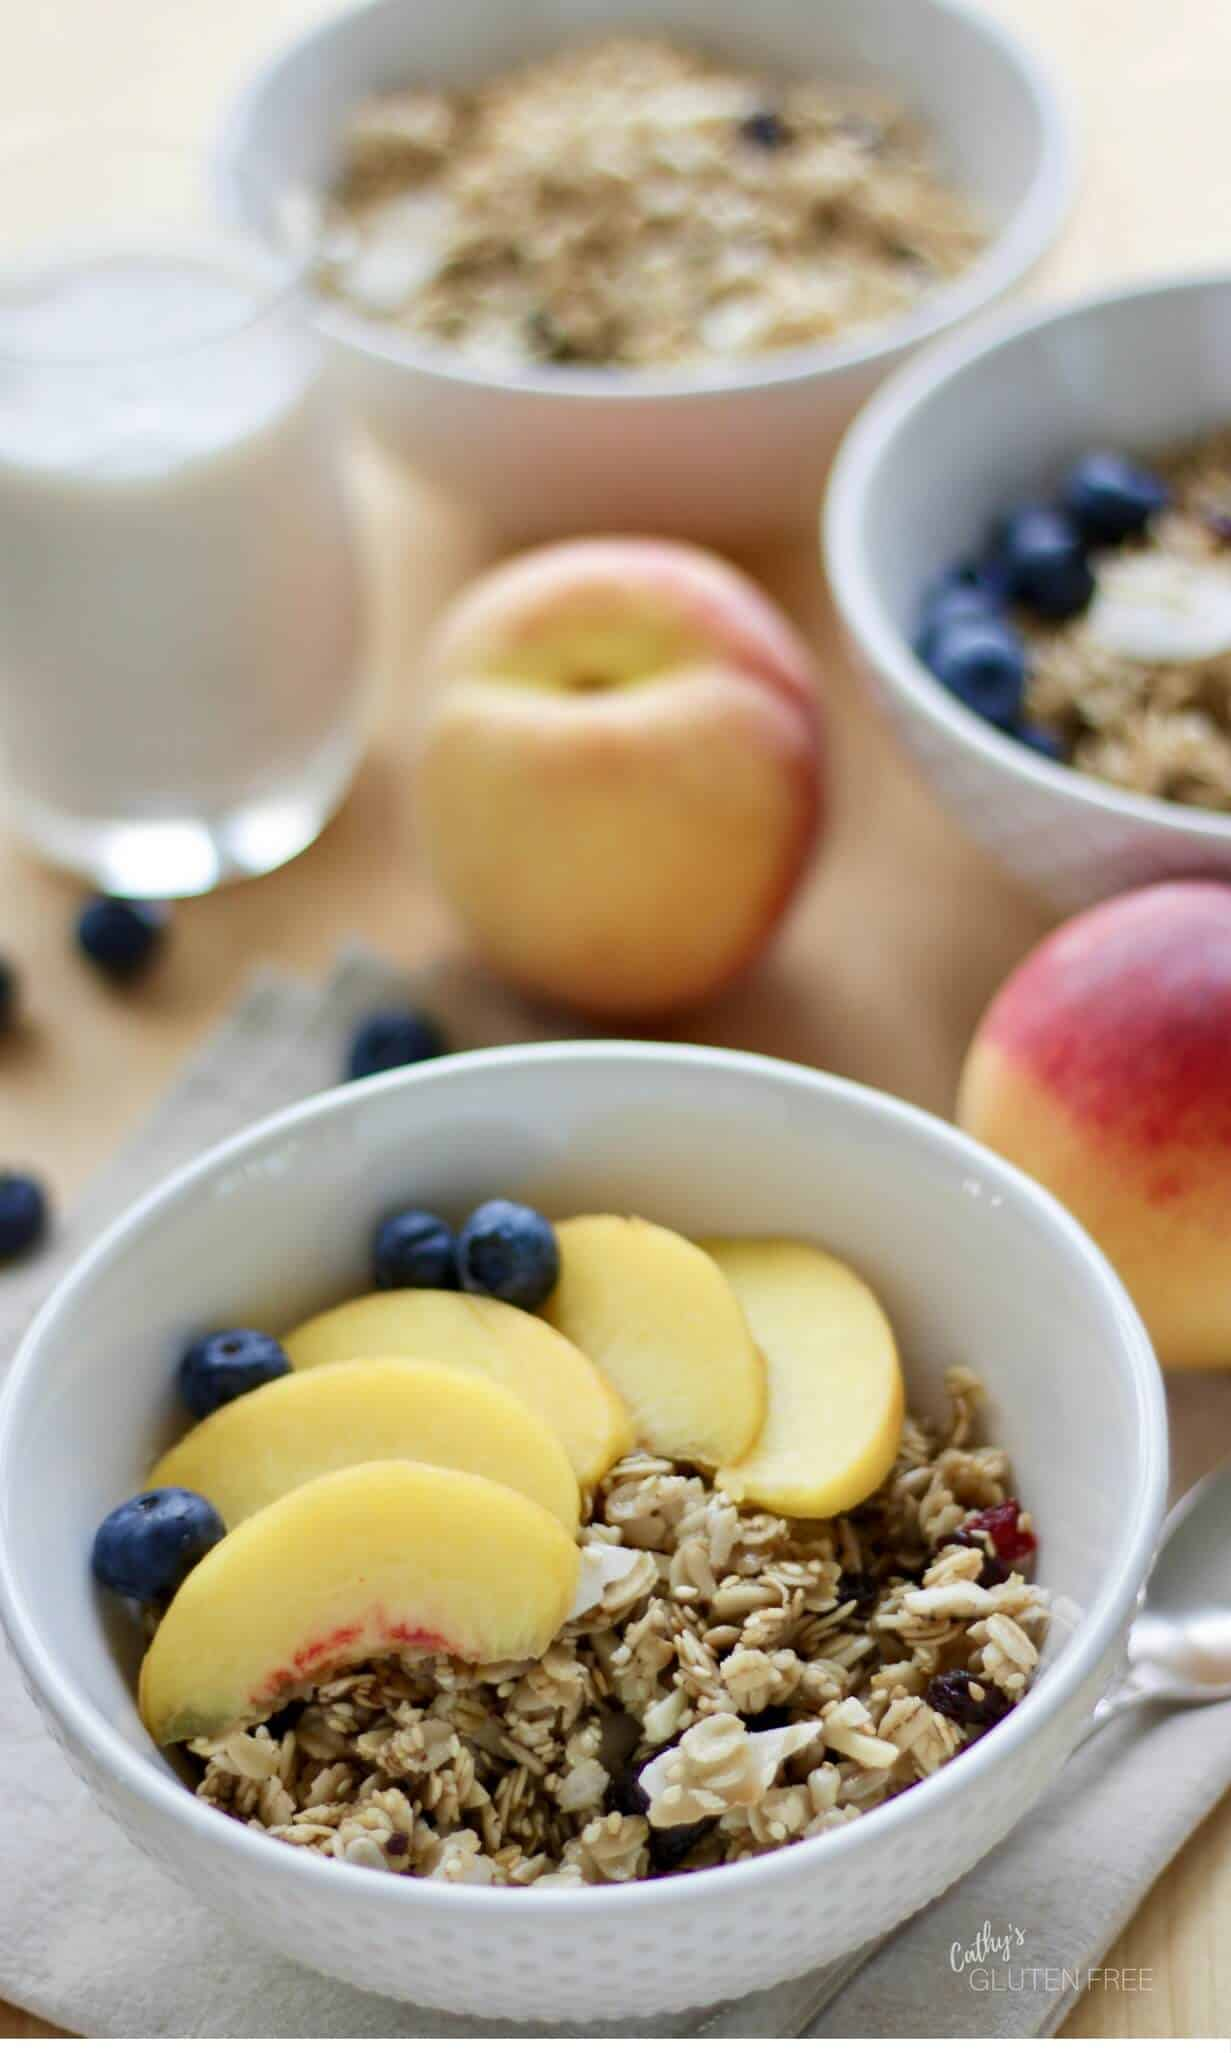 Gluten Free Granola topped with fresh fruit makes a lovely breakfast. CathysGlutenFree.com